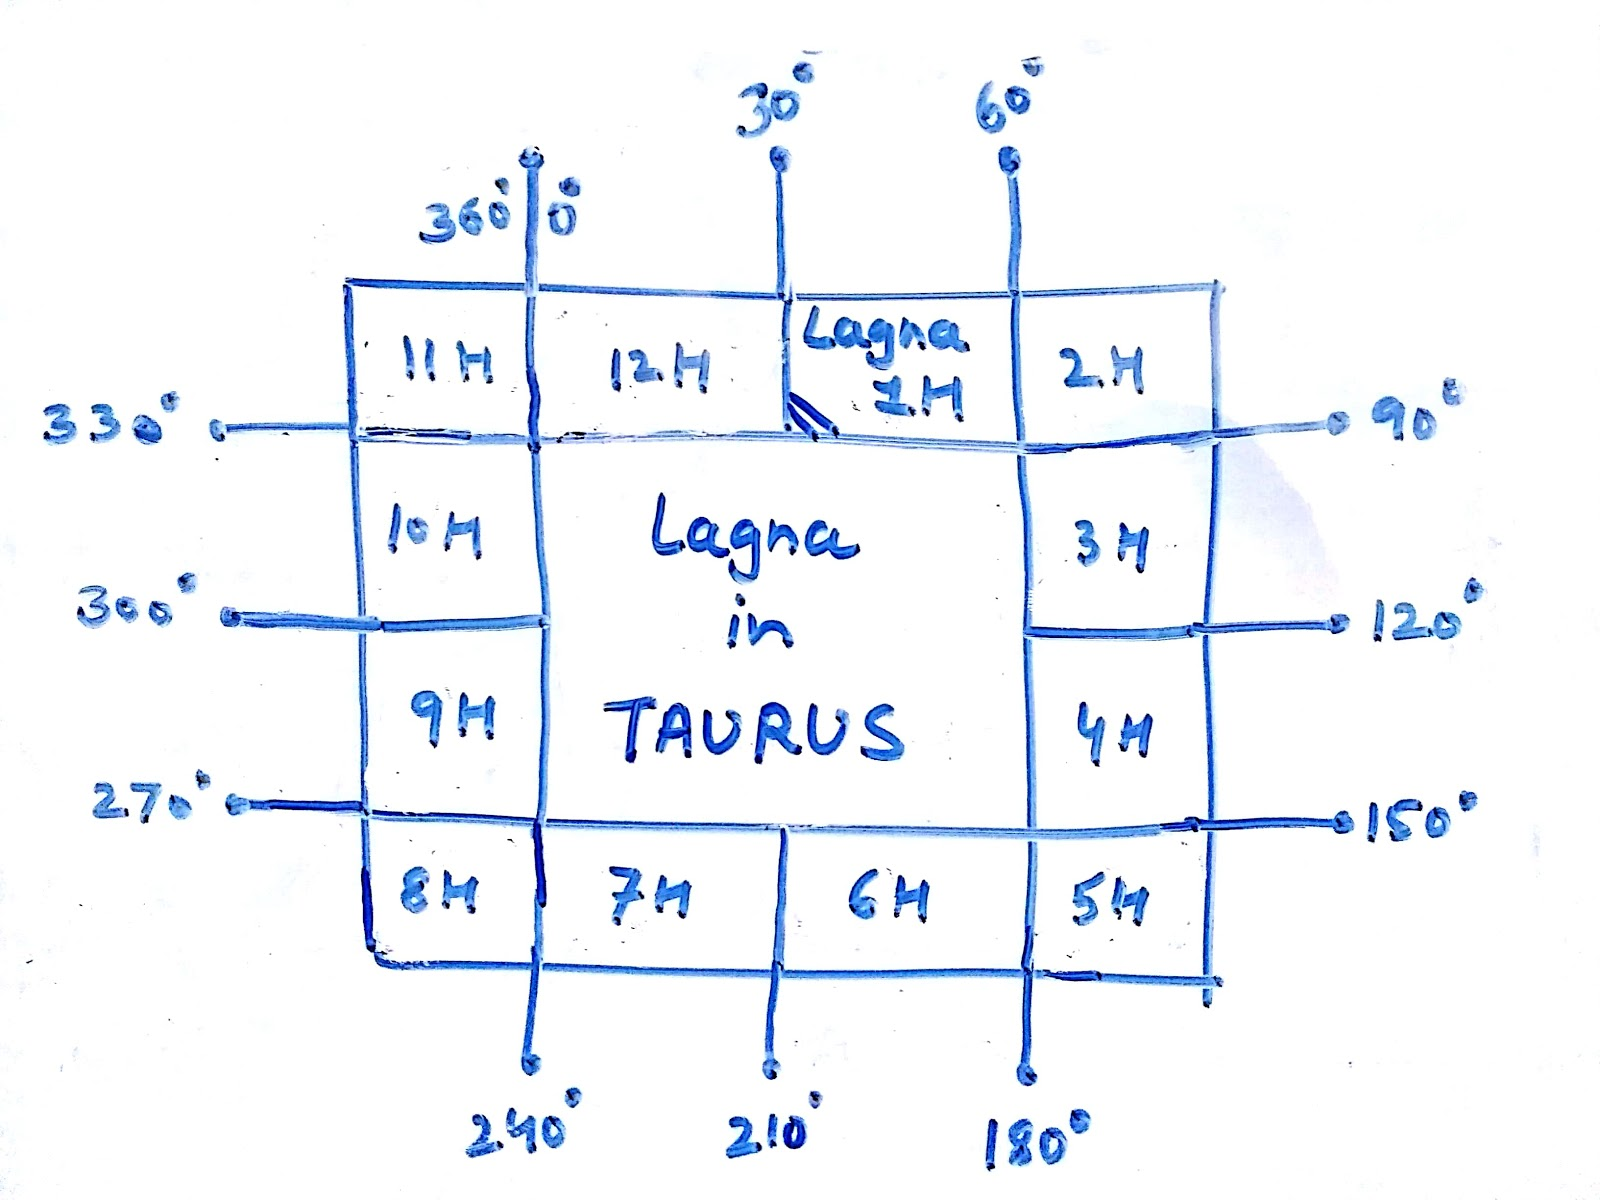 Udit chauhan 2017 lagna starts from the 2nd house for taurus lagna charts and in similar way houses are numbered in clockwise direction from the house of lagna geenschuldenfo Image collections